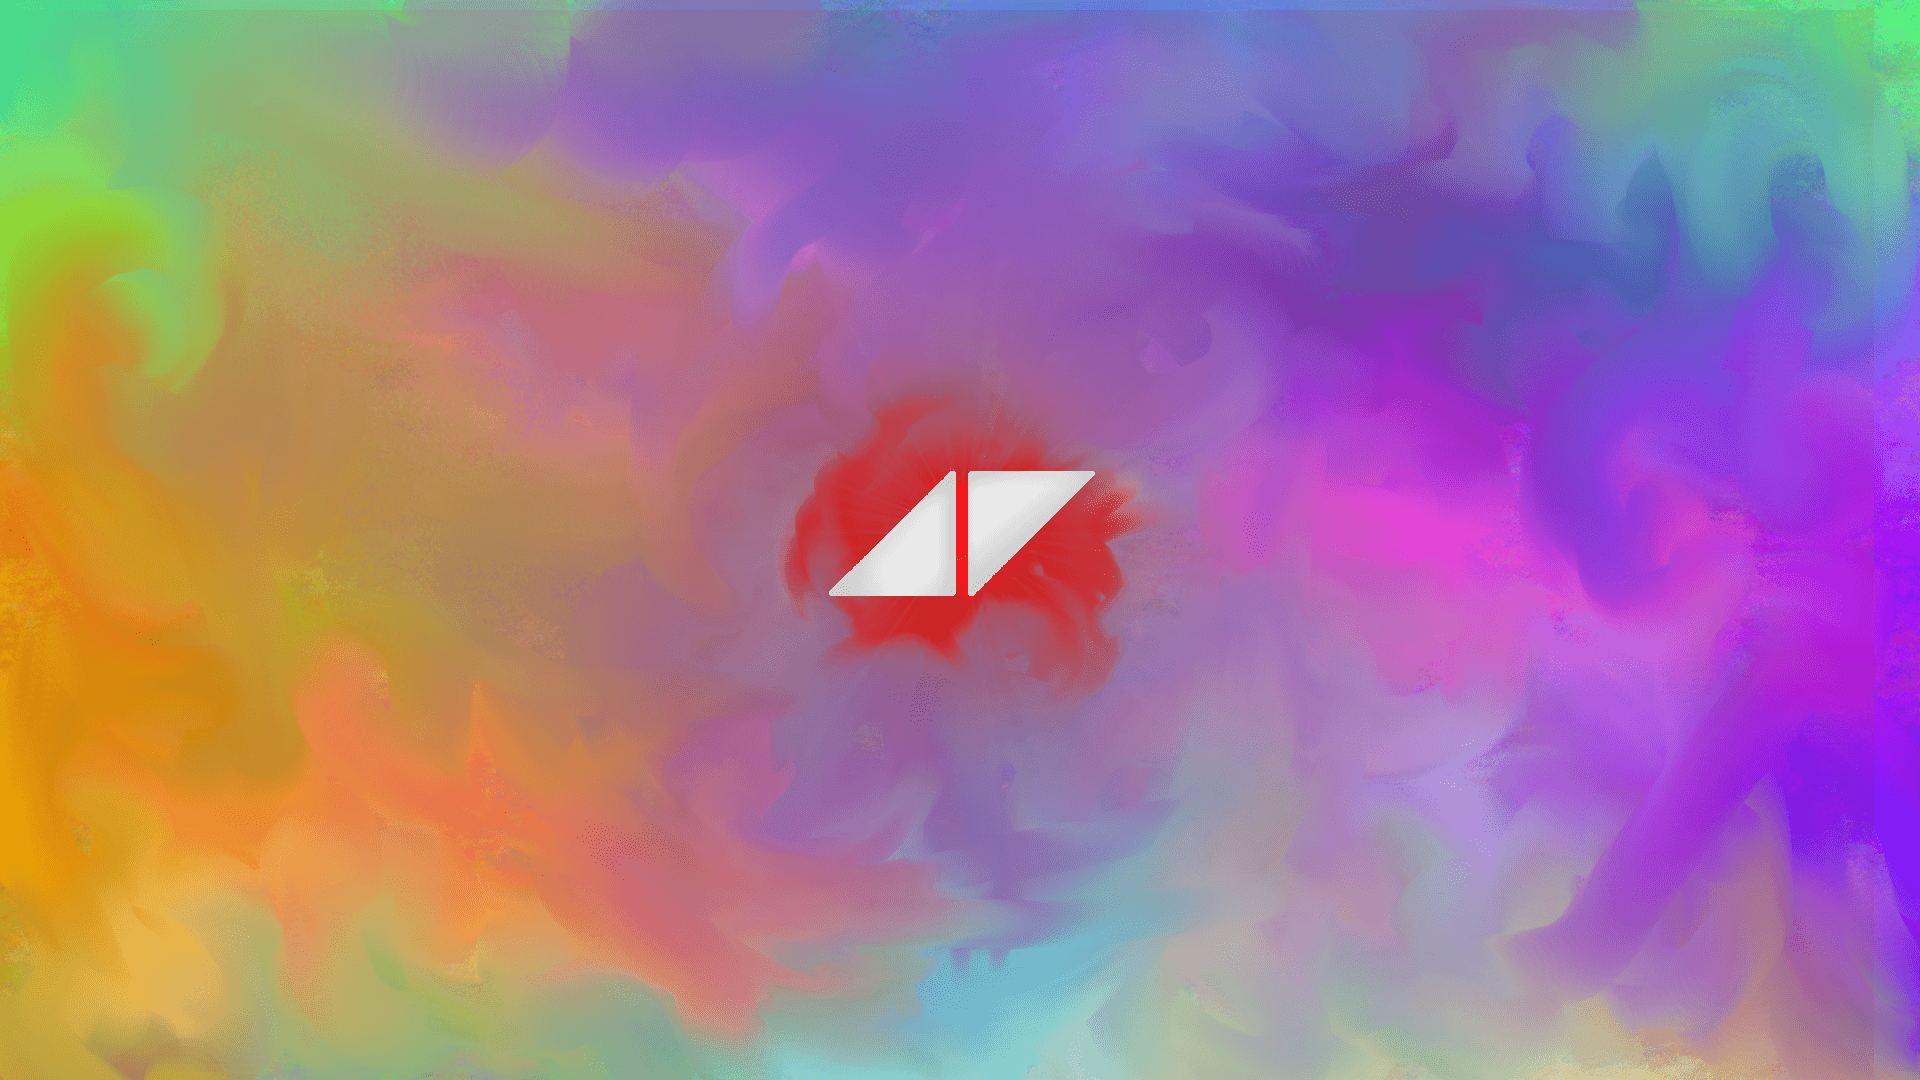 10 New Cool Backgrounds Hd Music Full Hd 1920 1080 For Pc: Avicii Wallpapers